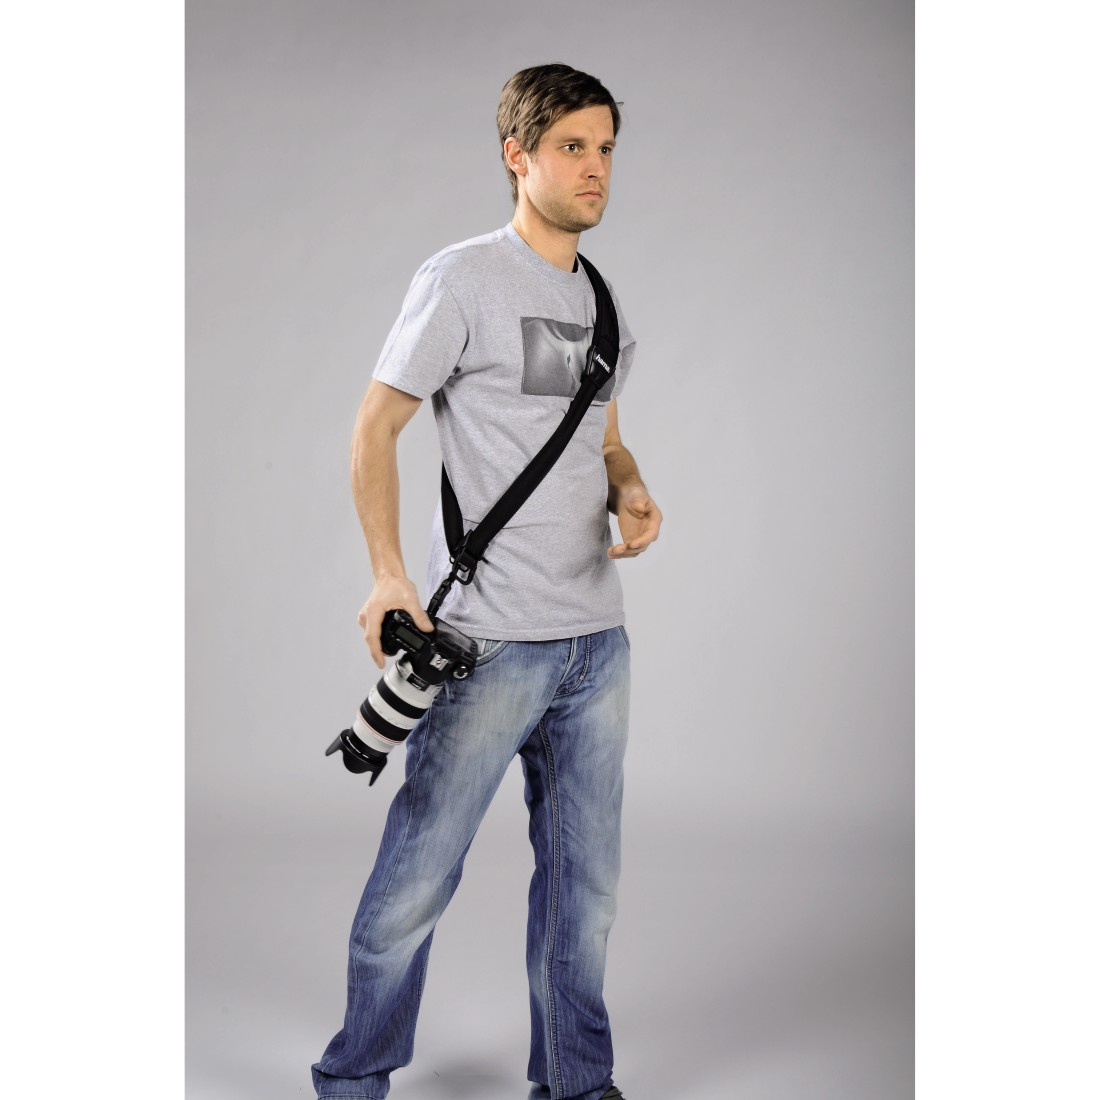 awx High-Res Appliance - Hama, Quick Shoot Strap Carrying Strap for SLR Cameras